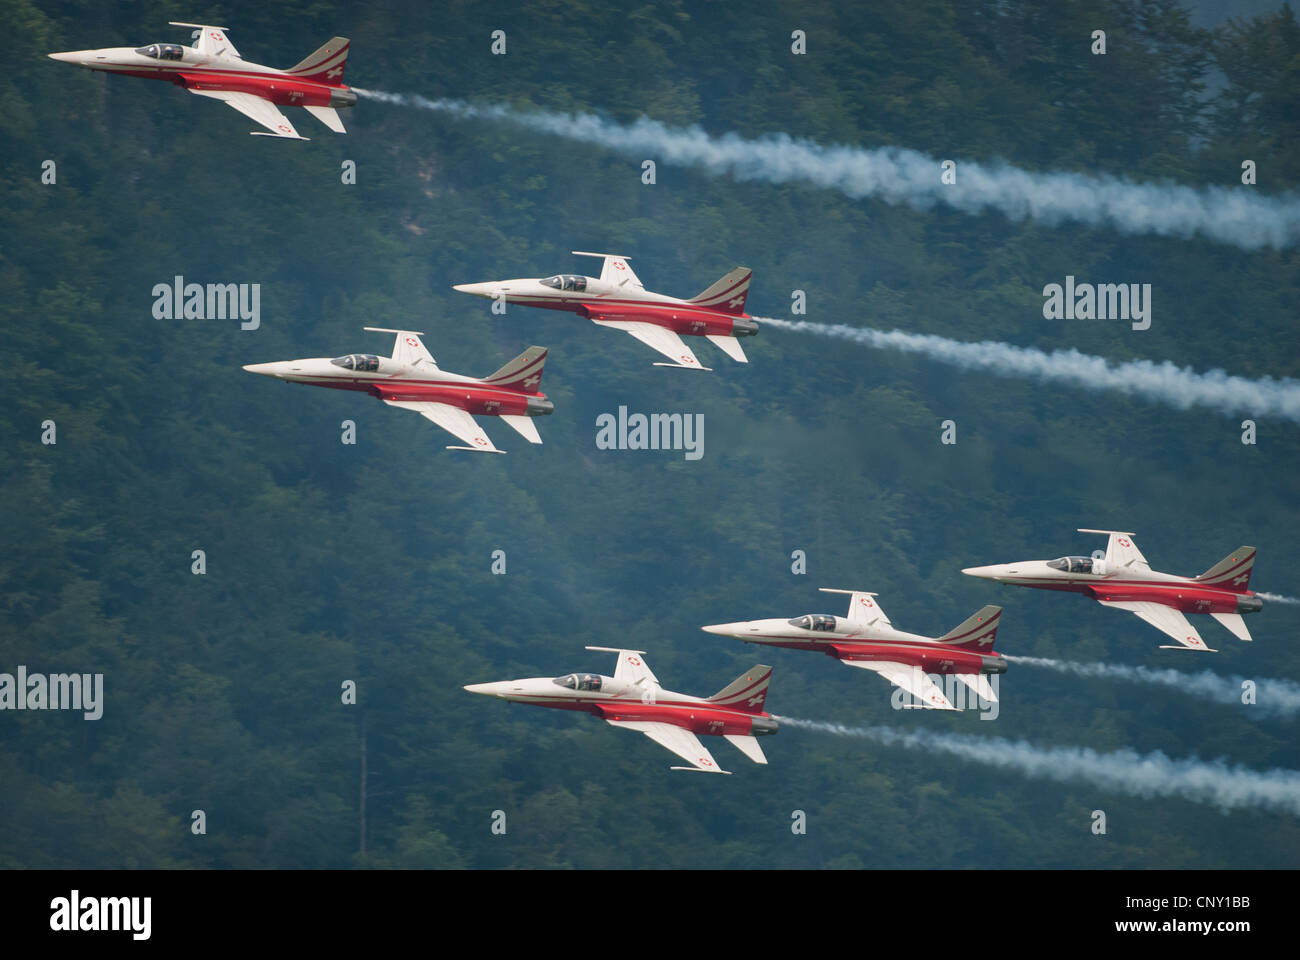 Patrouille Suisse with Tiger jets during an airshow in Mollis 2009, Switzerland - Stock Image